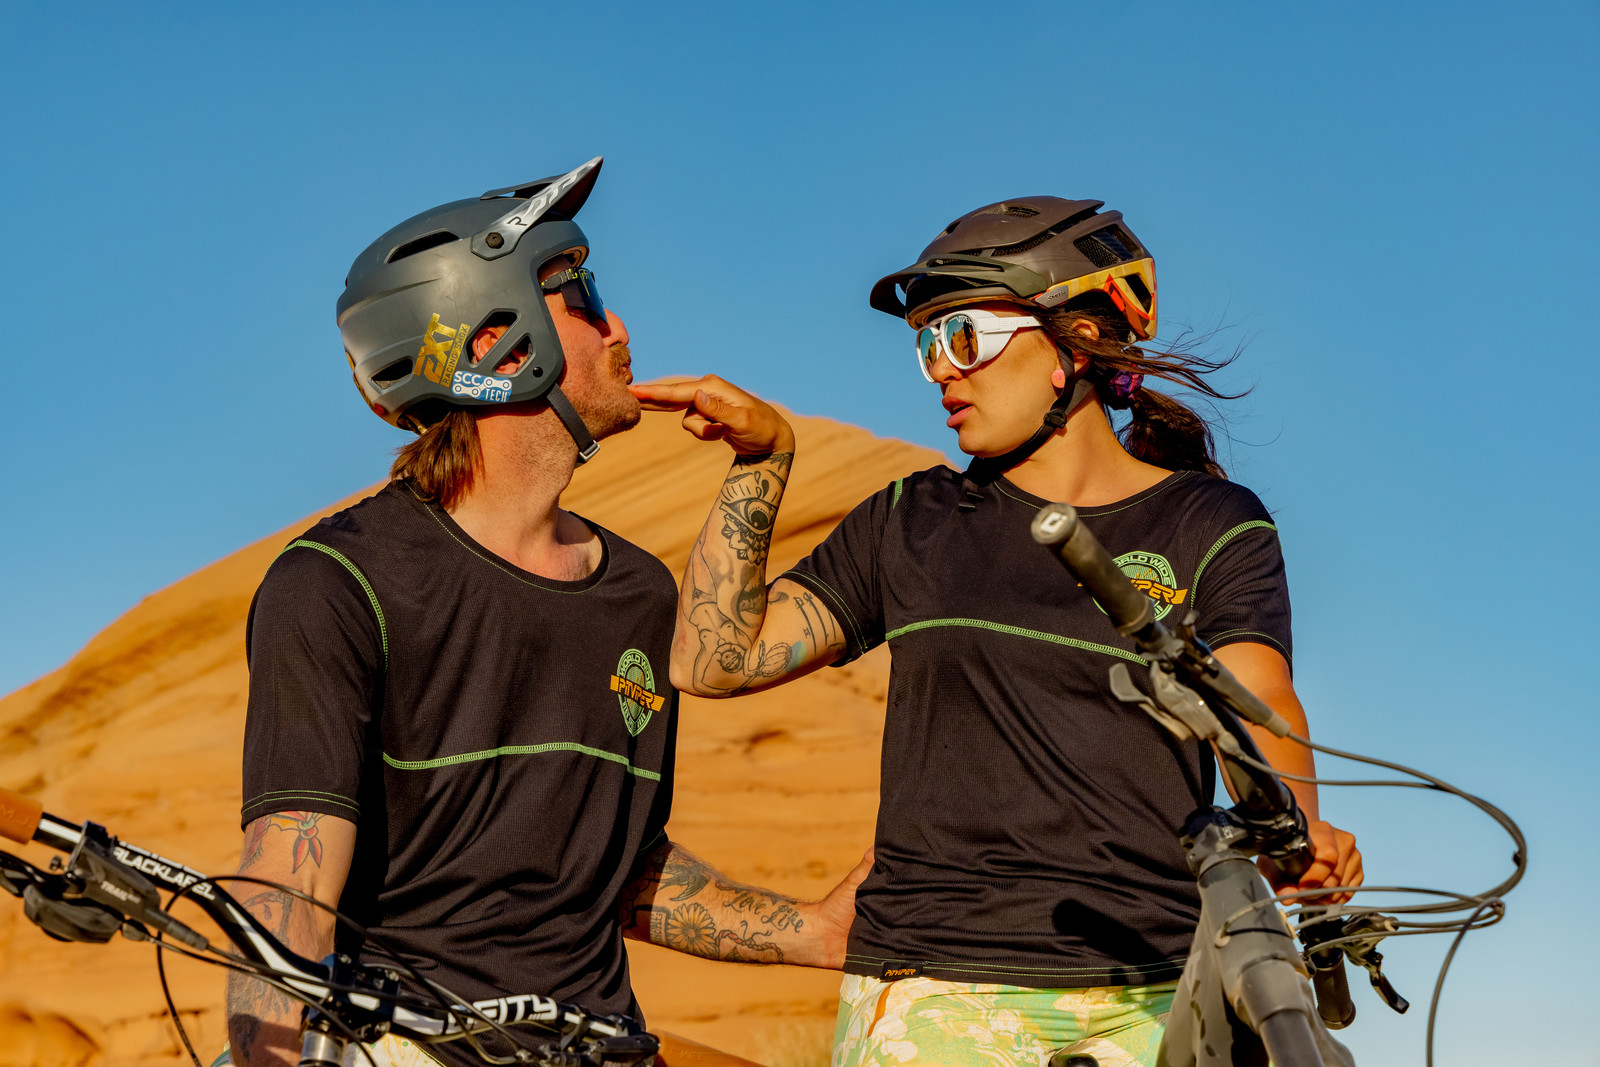 PIT VIPER Now Makes Mountain Bike Clothing